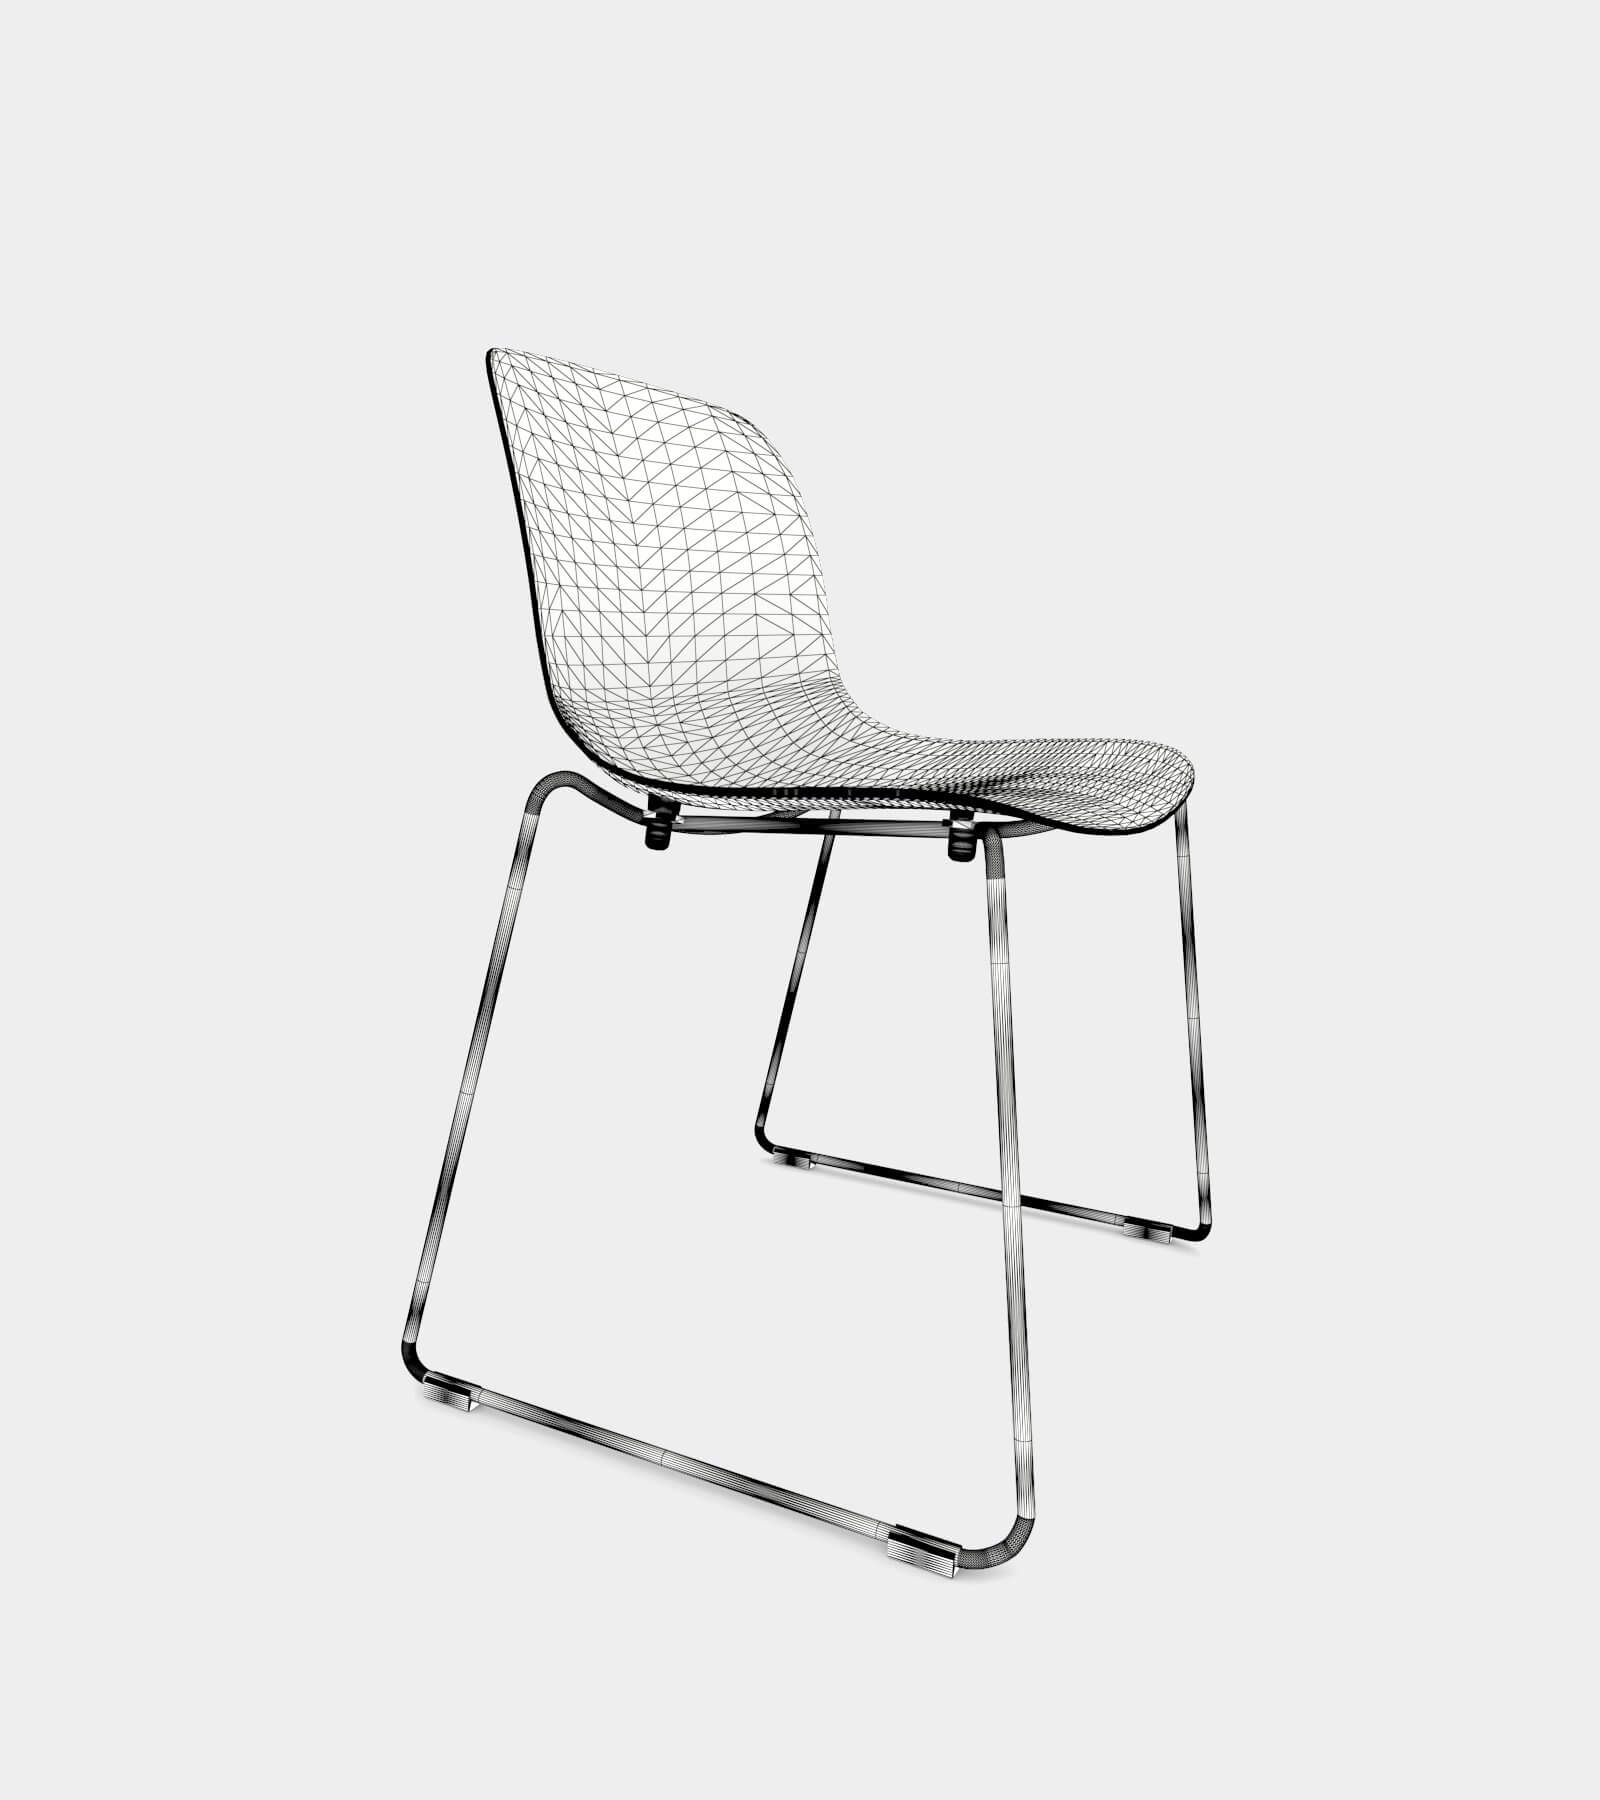 Chair with chrome frame and black seat-wire-11 3D Model